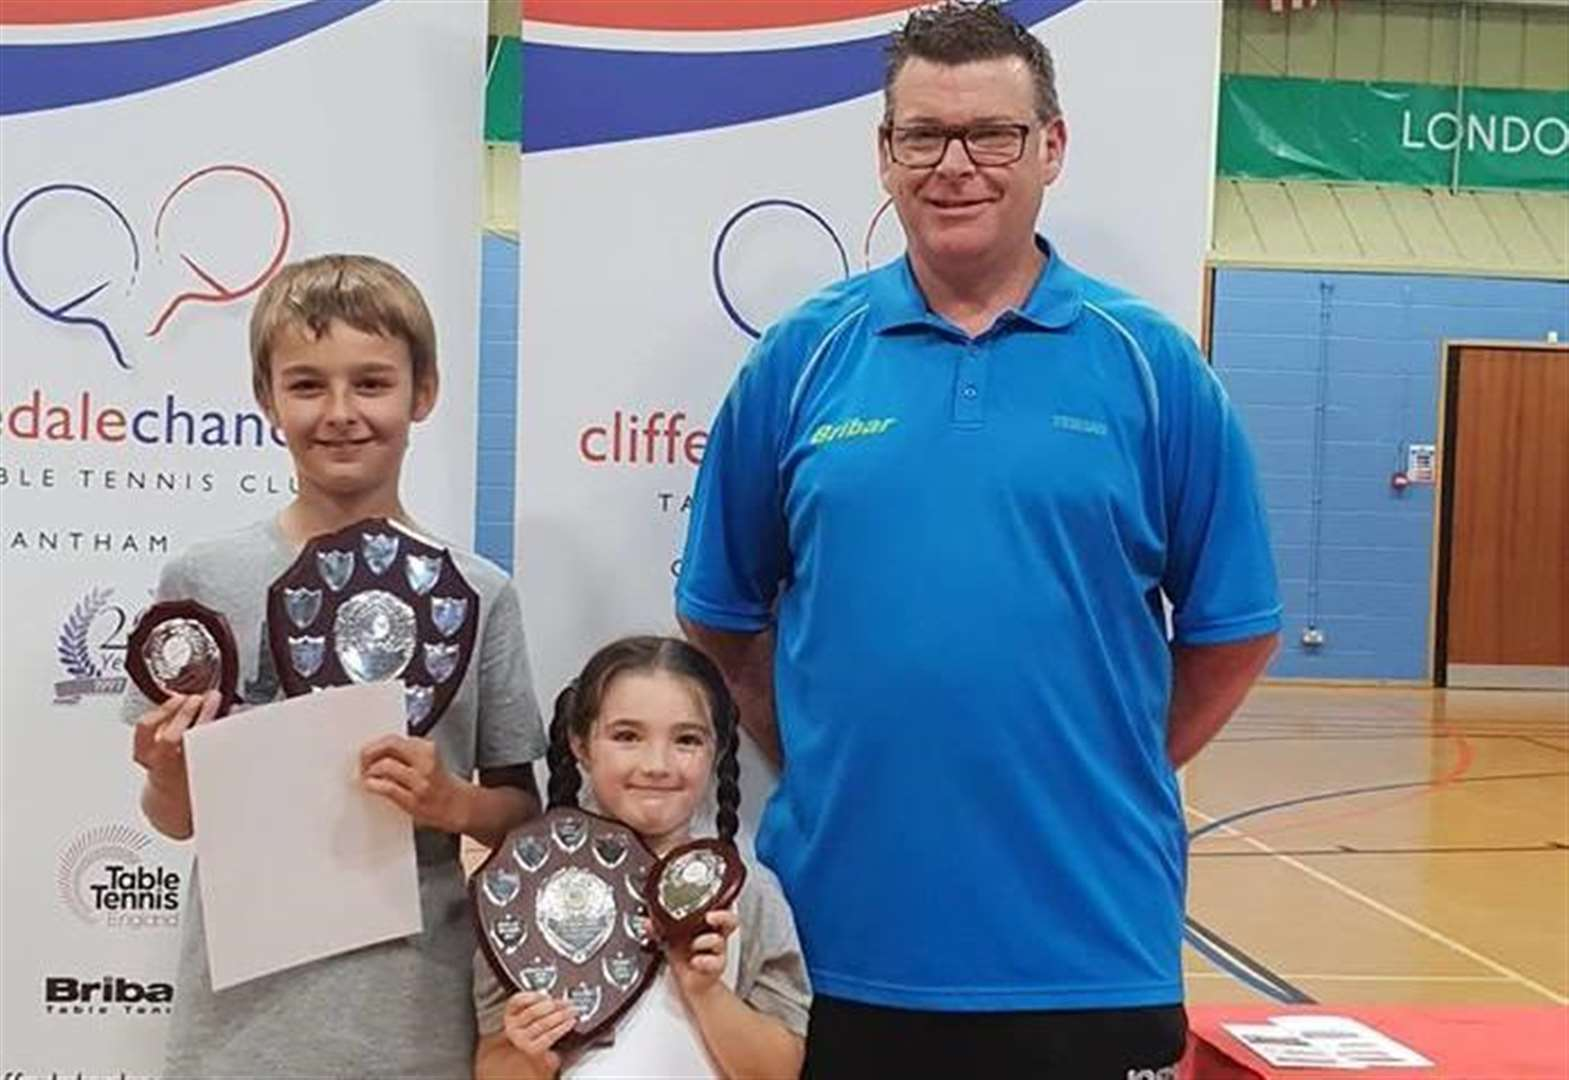 Club, GAPS and table tennis league organise schools tourney in Grantham